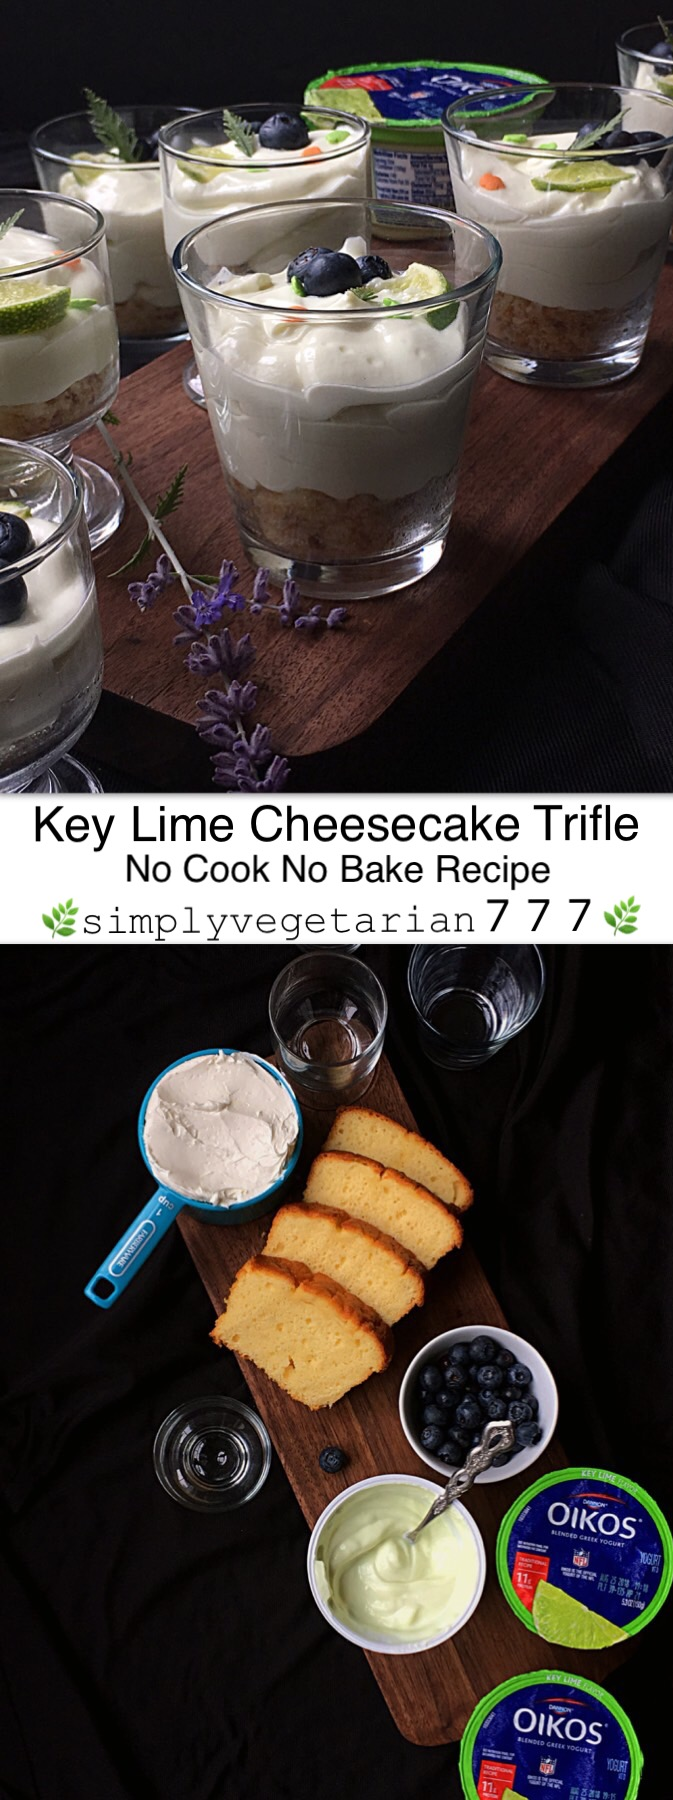 This Key Lime Cheesecake Trifle Recipe is super awesome, especially since it is a No Bake and a No cook Recipe. It is really an easy and simple dessert to put together. More so it is rich in protein and made with your favorite Greek Yogurt available at your convenient neighborhood store Walmart. #NotJustAHint #OikosAtWalmart #WholeLottaFlavor #OikosTraditionalAtWM #Trifle #Cheesecake #KeyLimeCheesecake